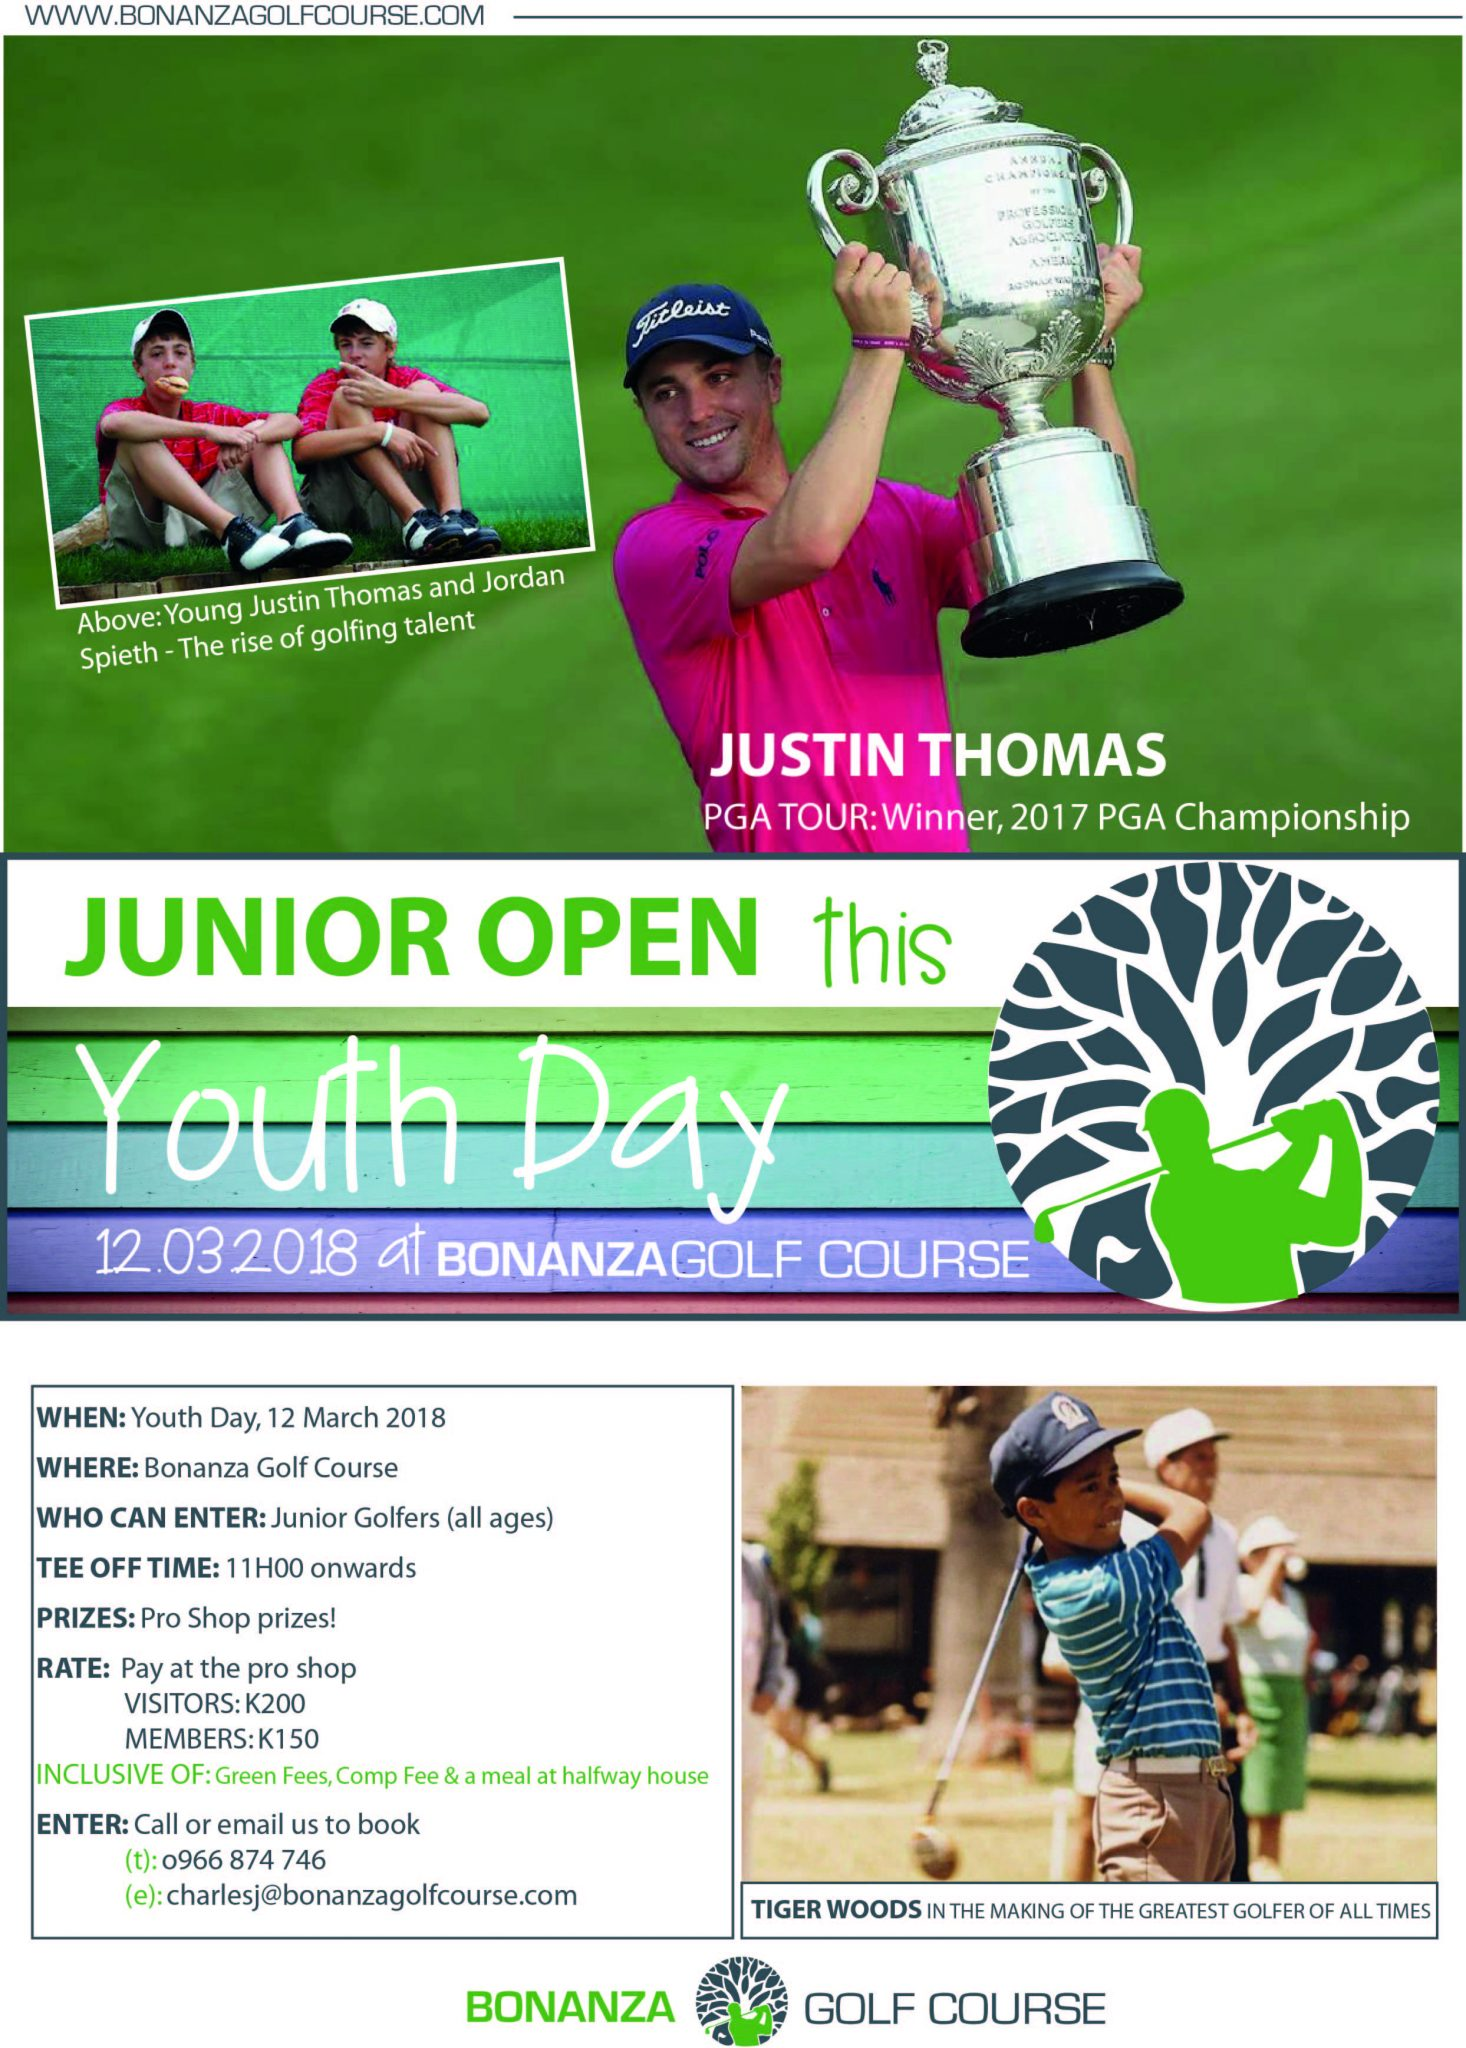 junior open, youth day